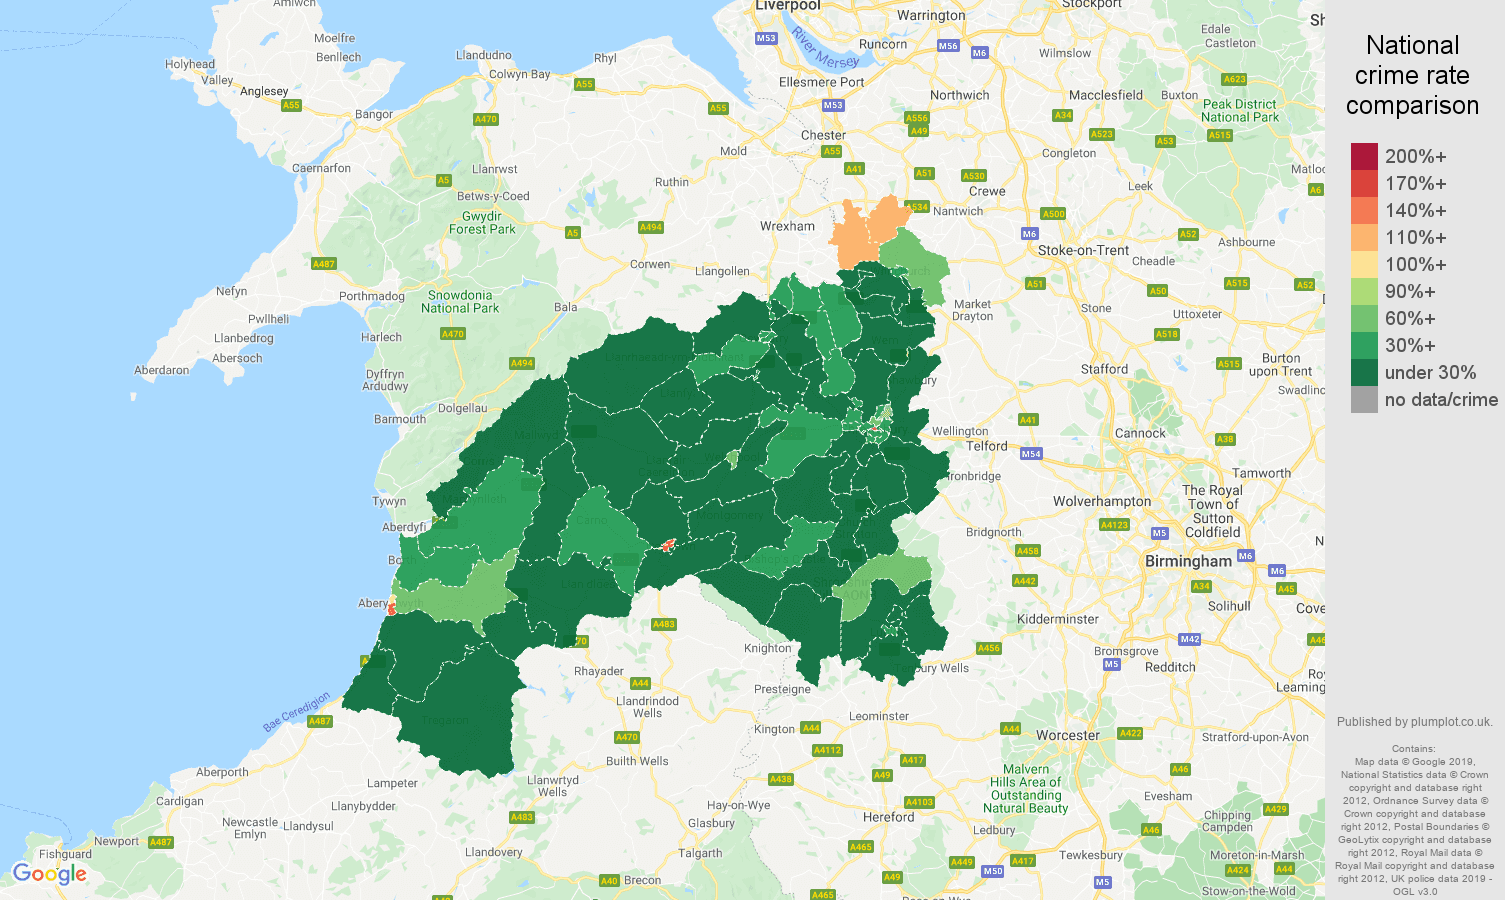 Shrewsbury public order crime rate comparison map